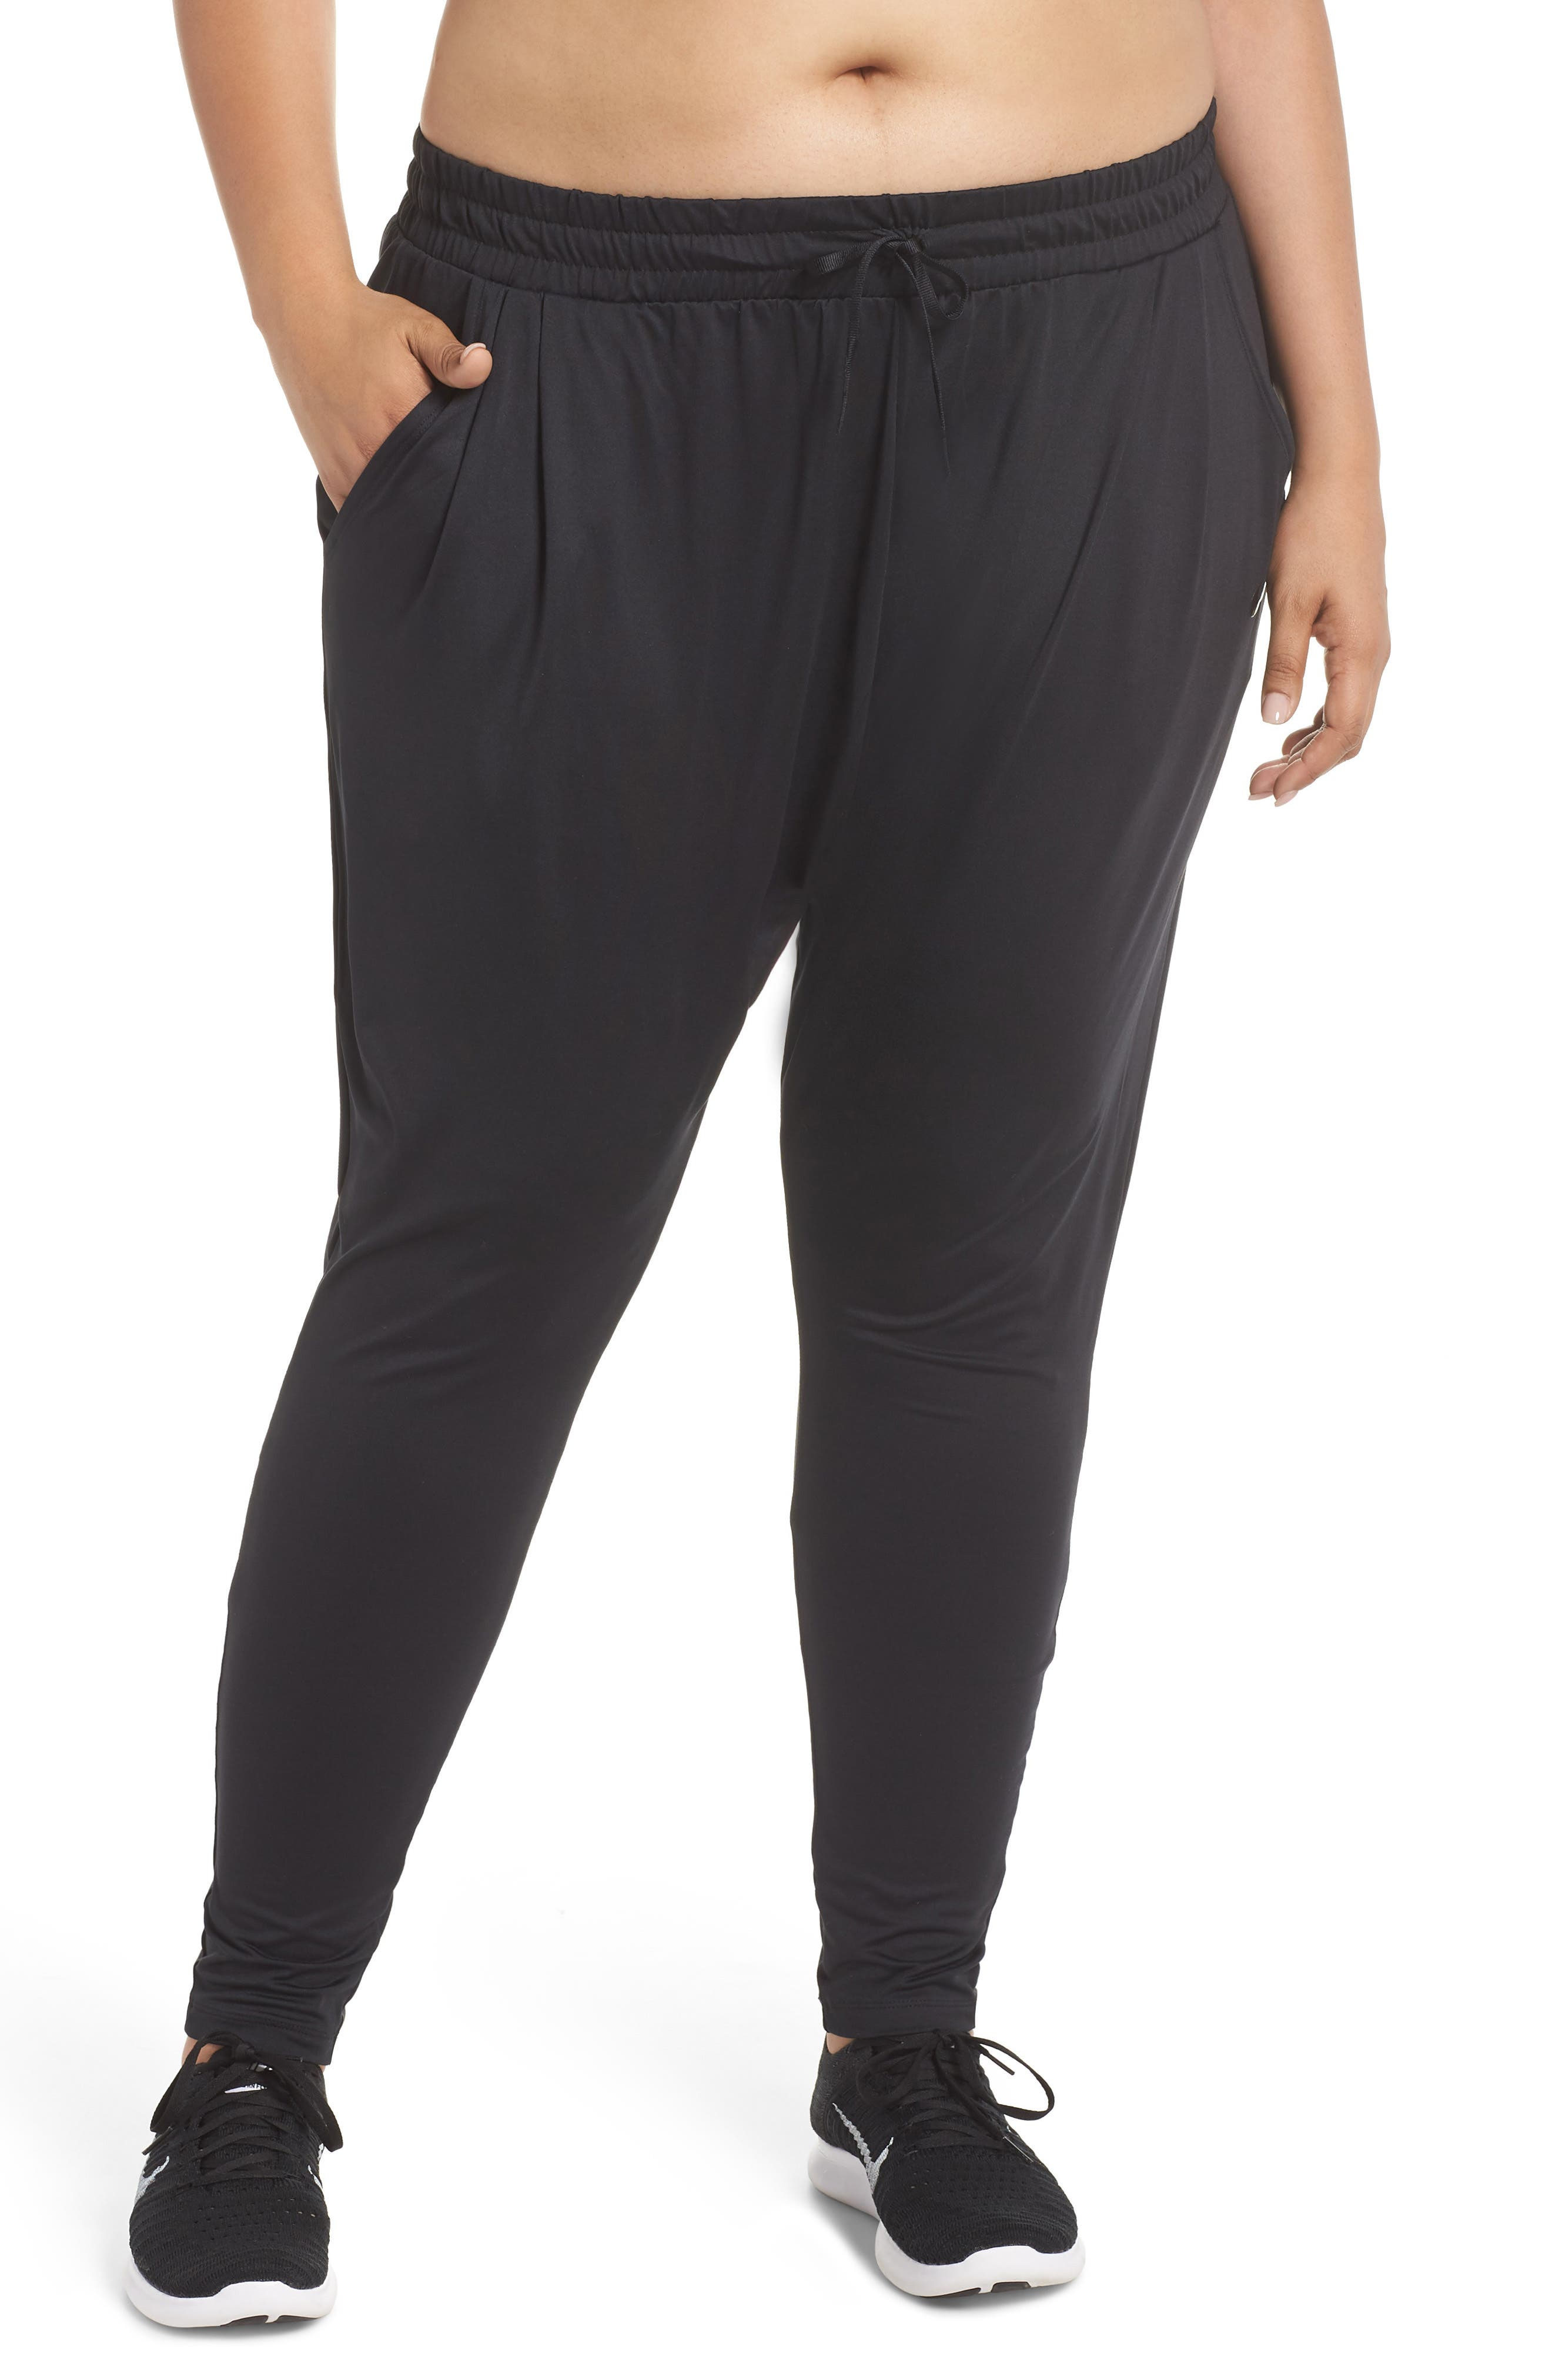 Dry Lux Flow Training Pants,                         Main,                         color, BLACK/ CLEAR